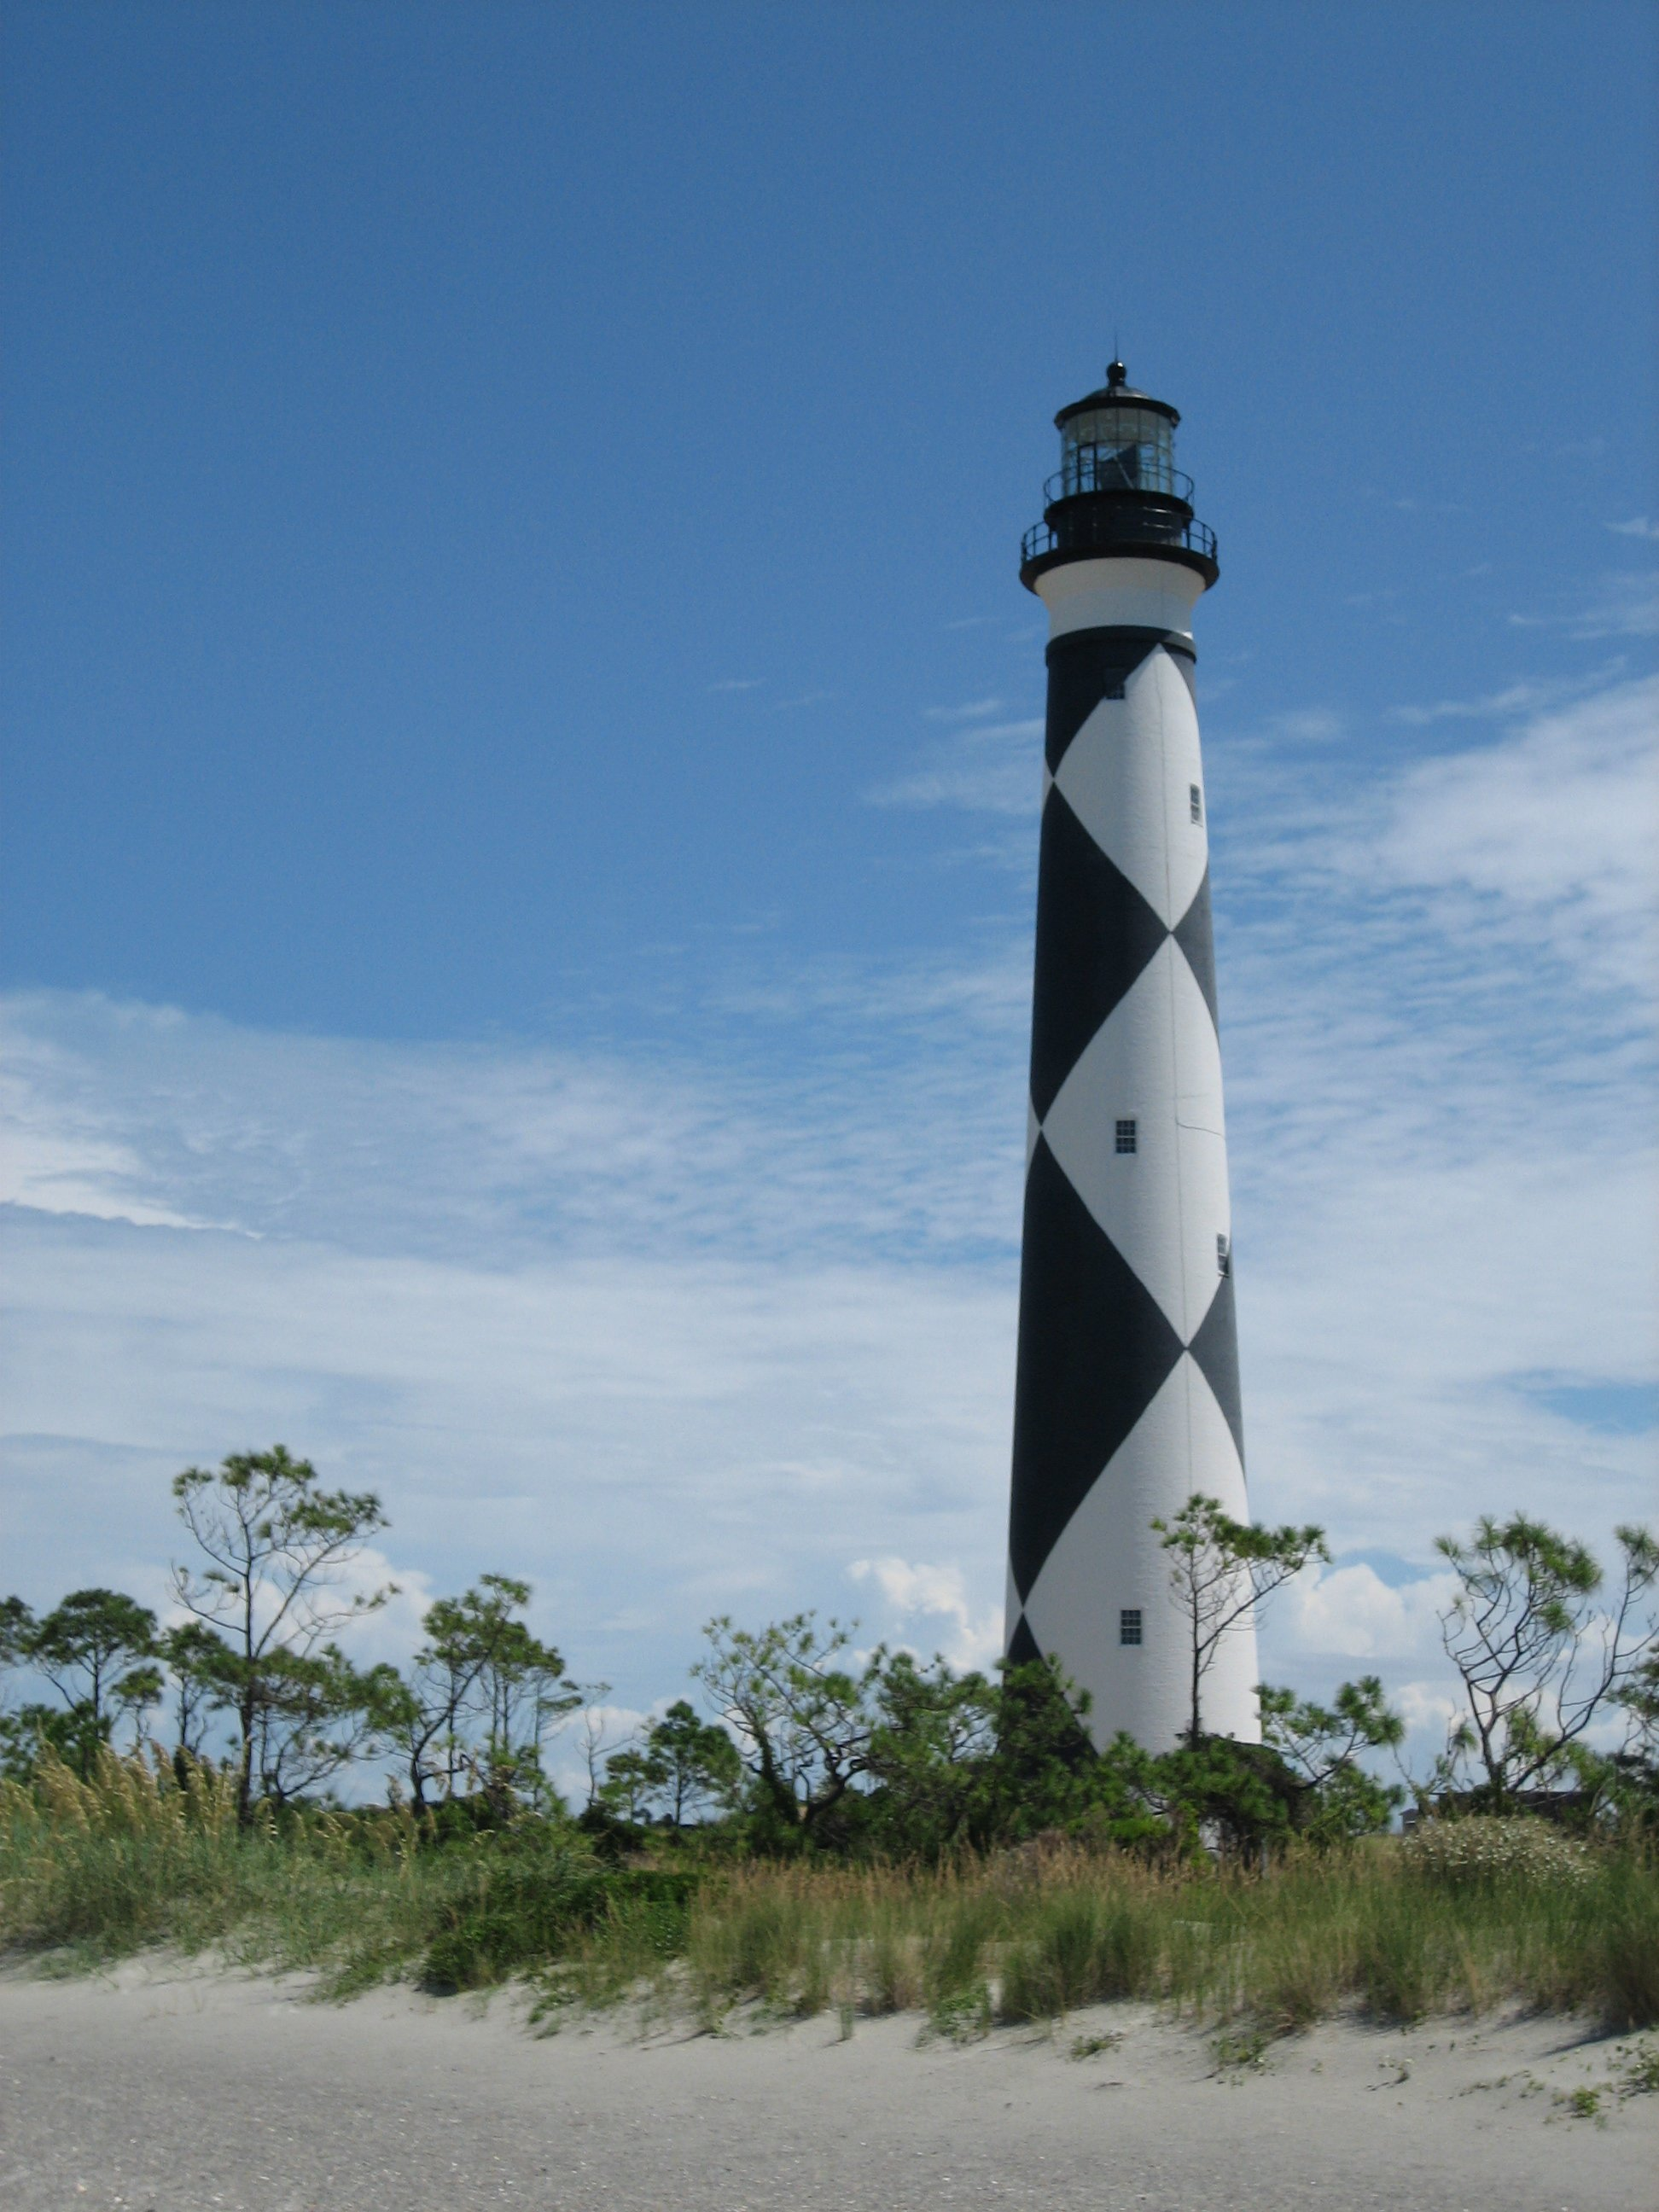 Cape Lookout Lighthouse Photo: BrianDBell- CC by SA 3.0 via Wikimedia Commons